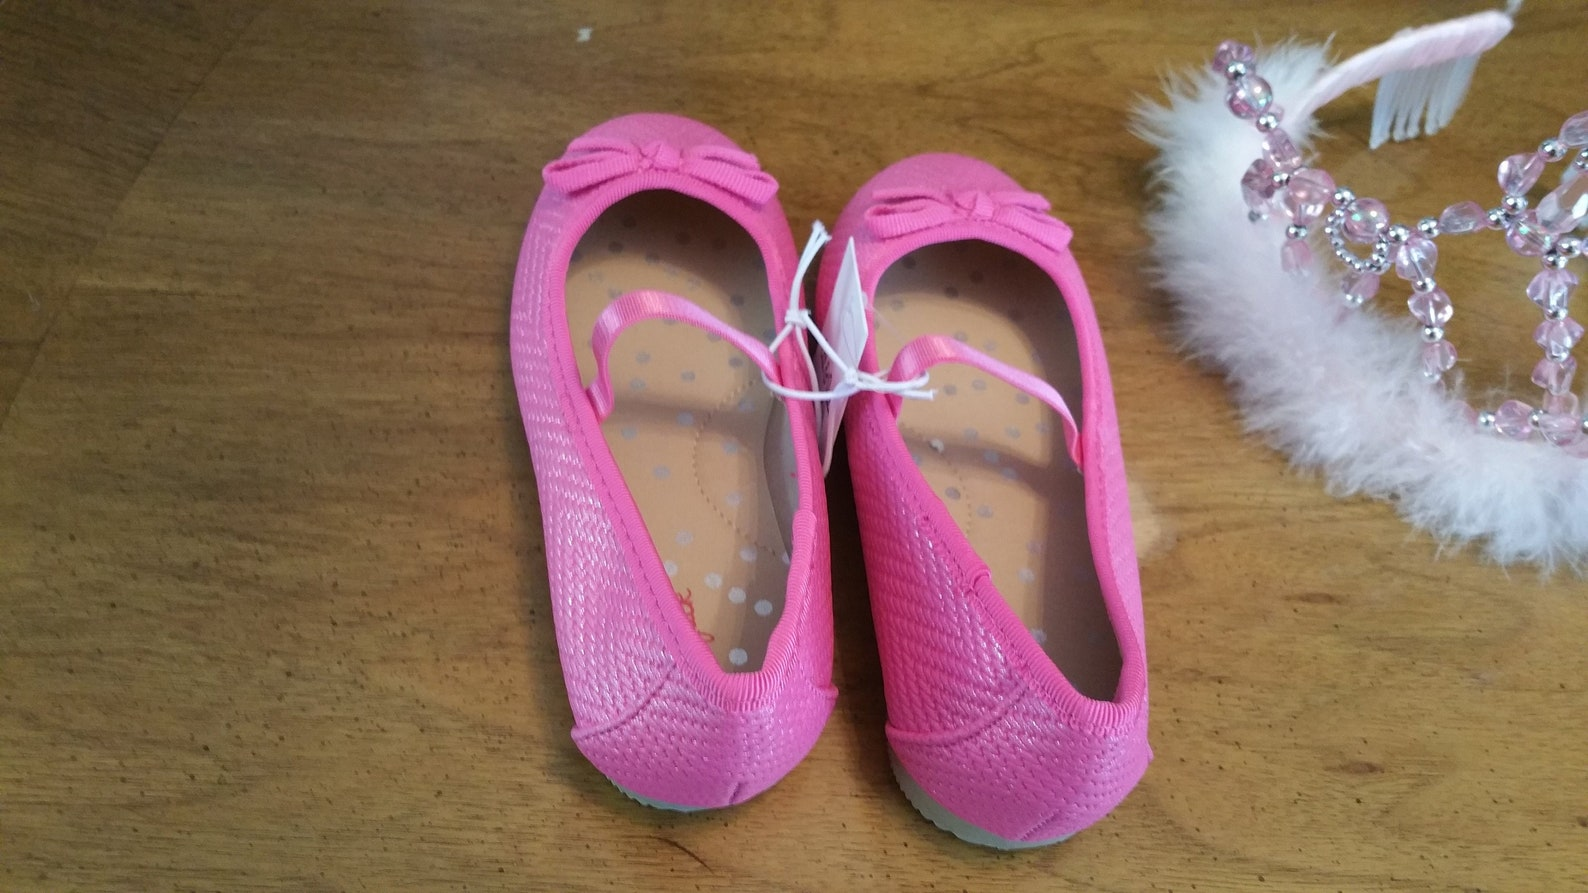 new hot pink ballet girls shoes, size 6, cat and jack, pink slipper shoes, has bows, dressy, formal, rubber sole, preppy, femini